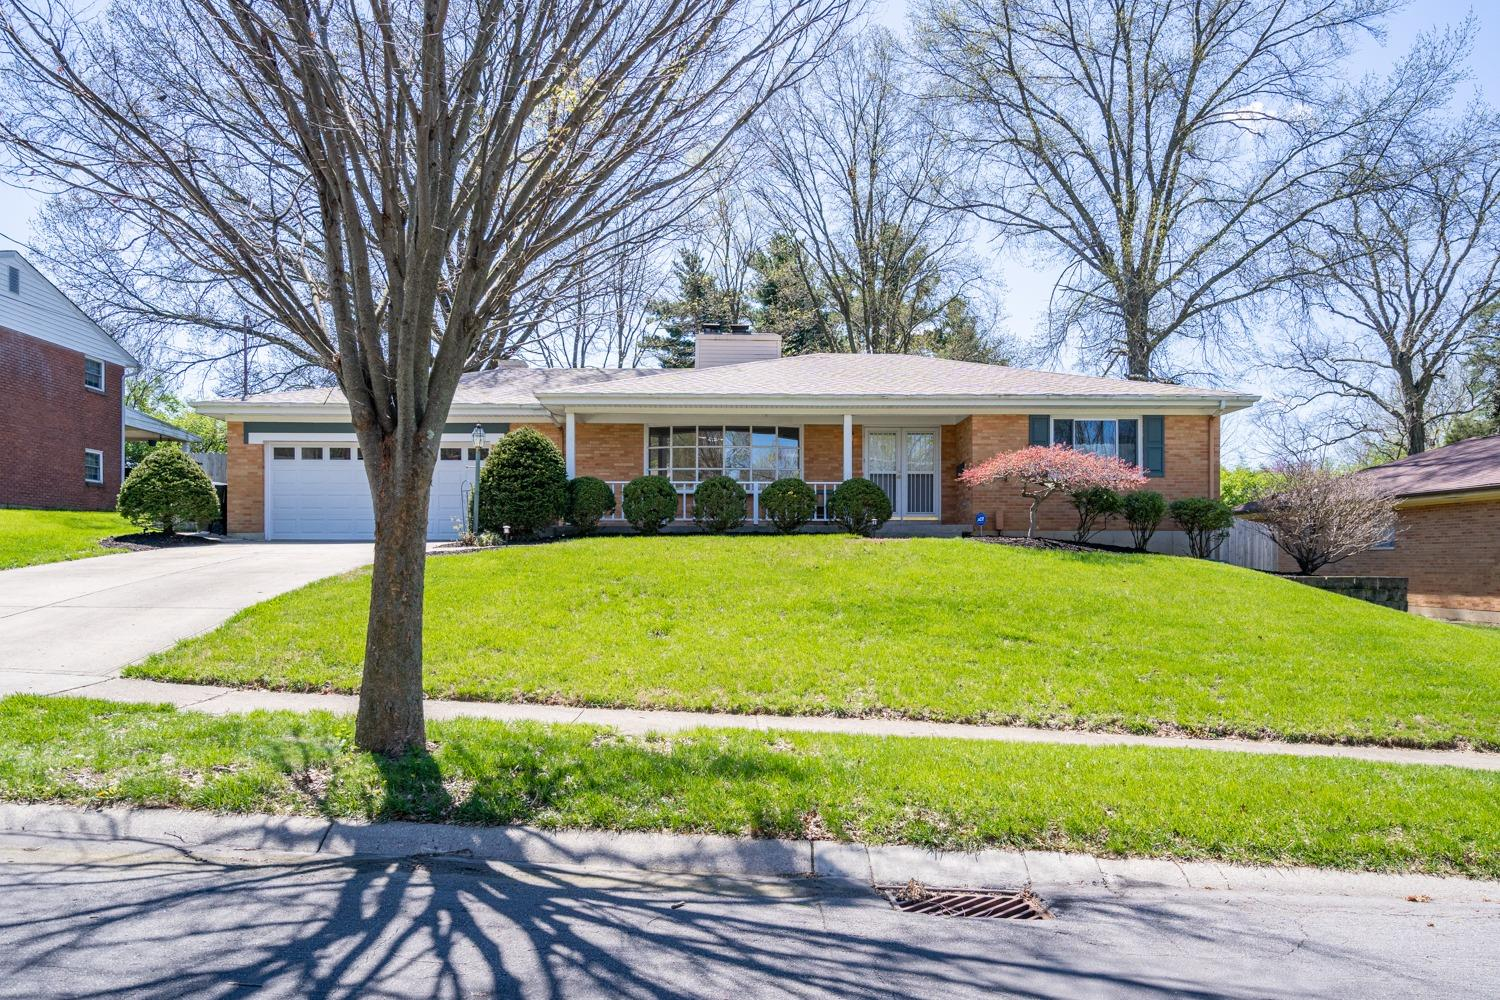 2641 Fairhill Dr Mt. Airy, OH